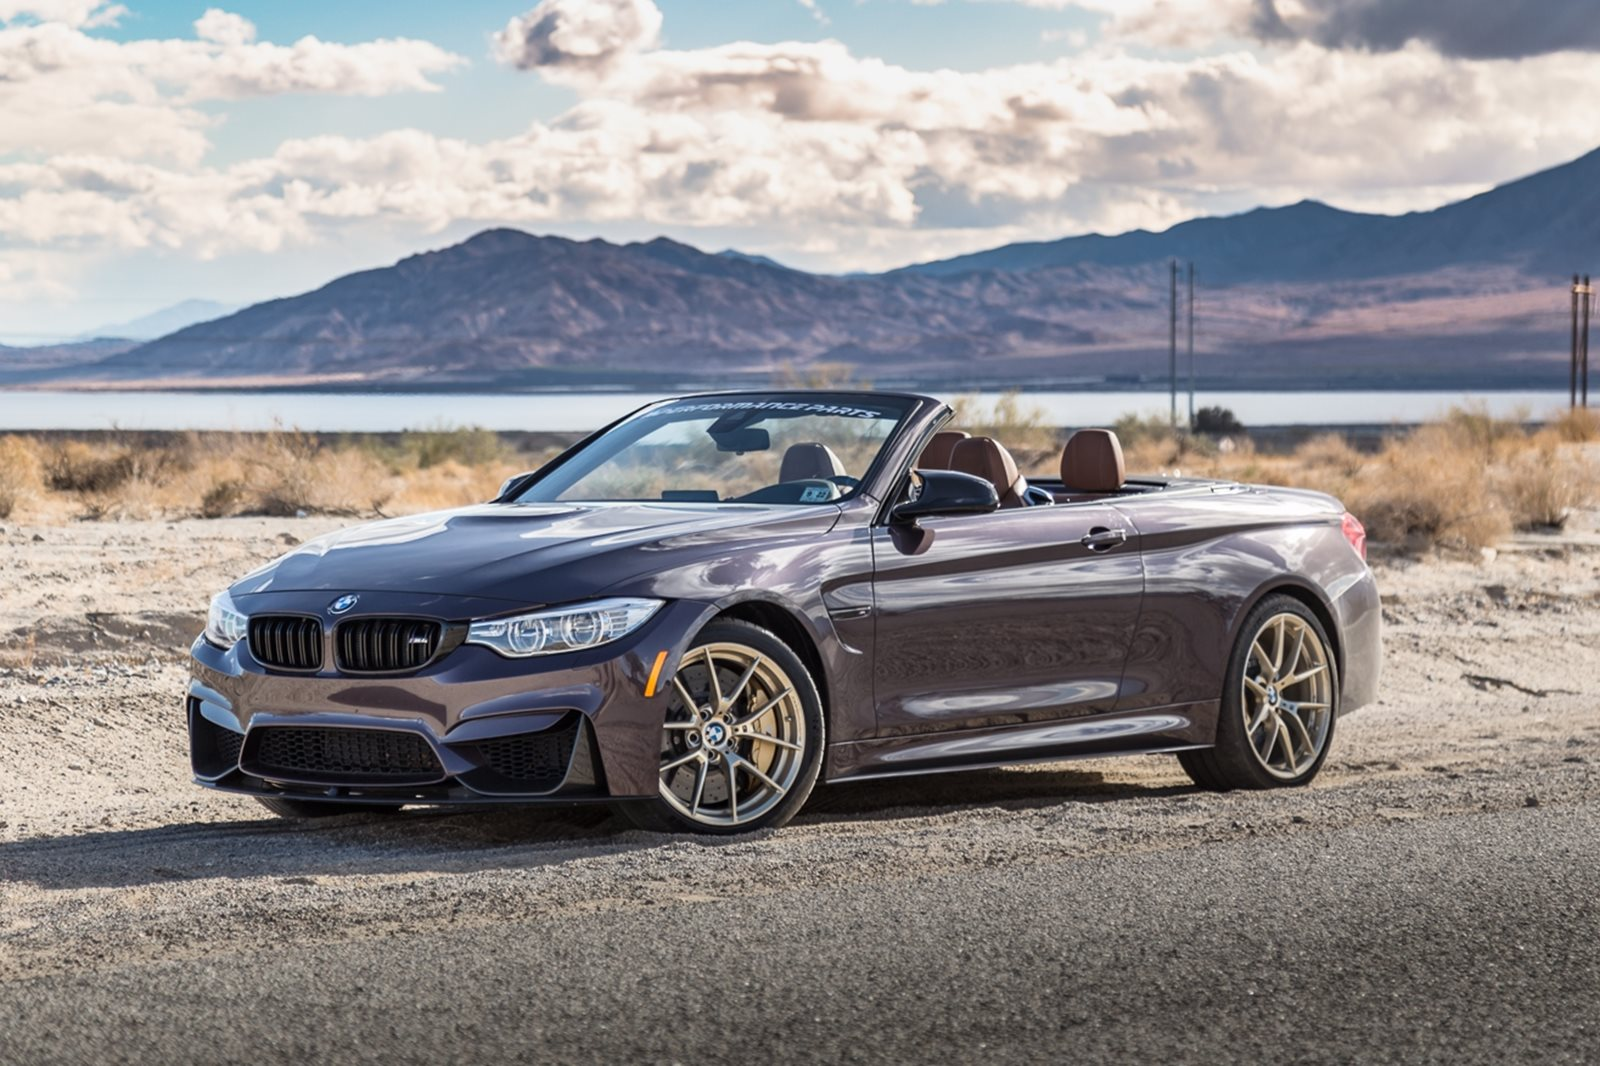 2018 bmw m4 convertible test drive review: best casual m car? - carbuzz